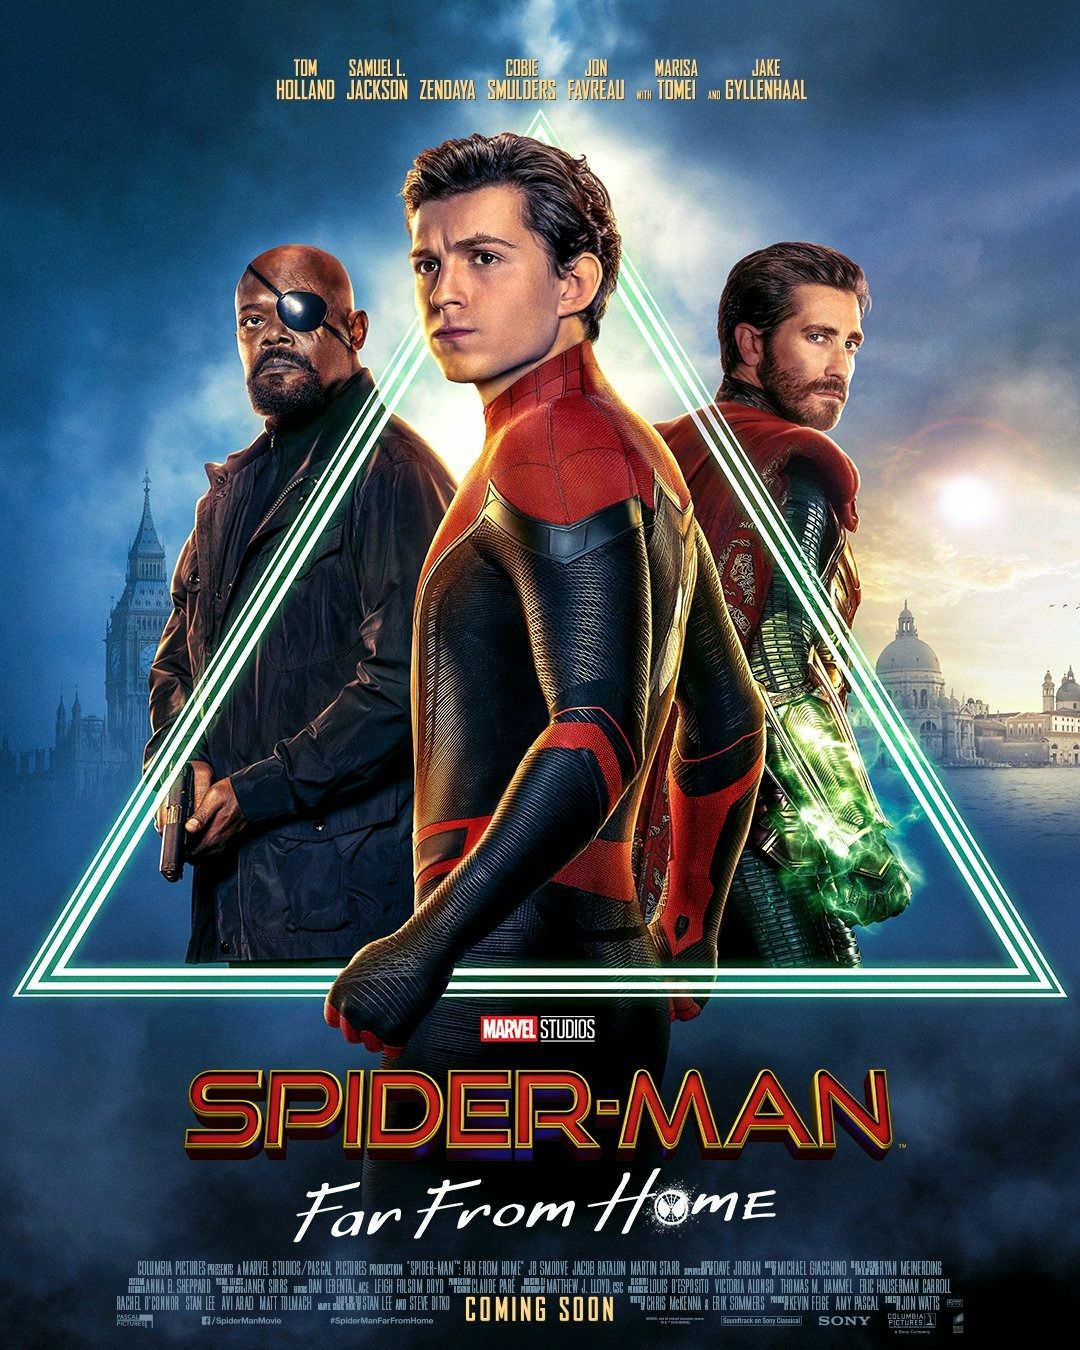 Spider-Man: Far From Home Posters Look off into the Distance ...